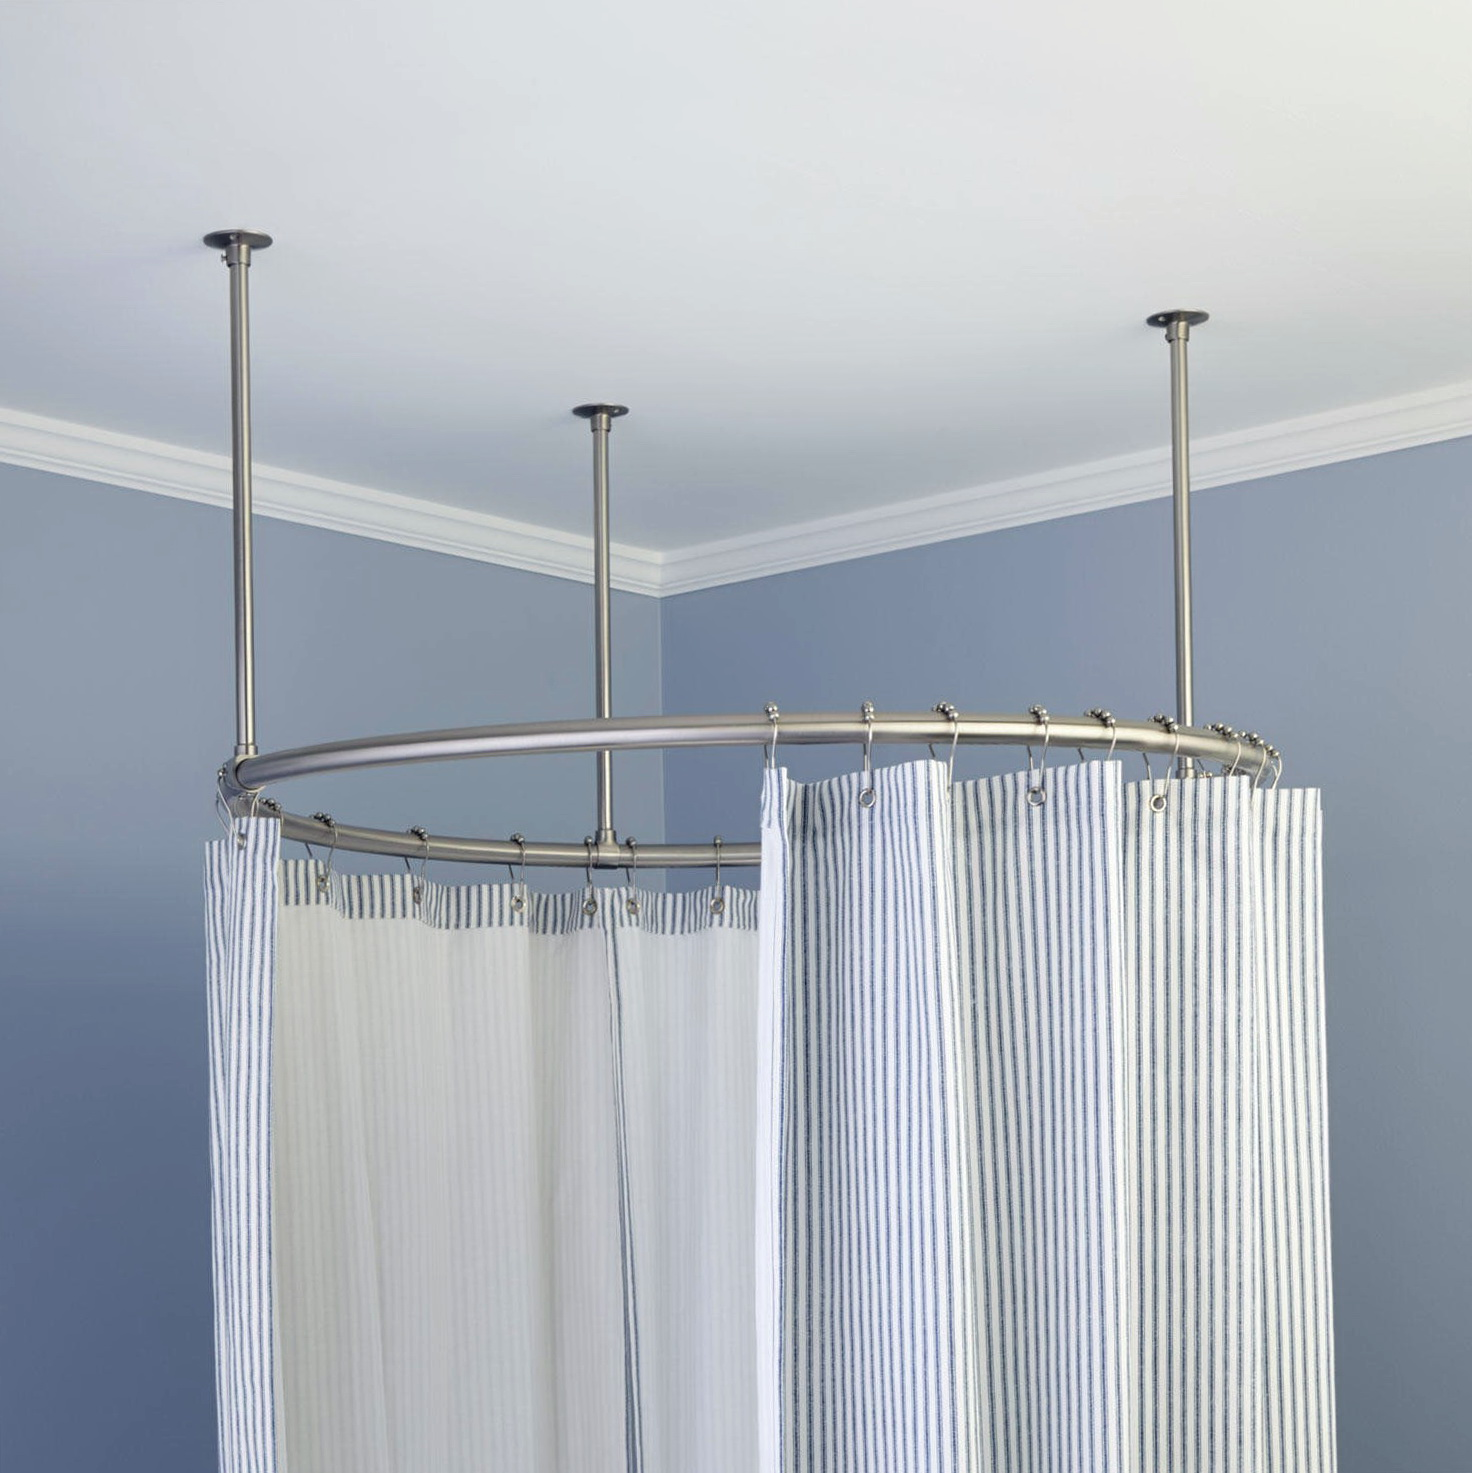 Circular Shower Curtain Rod Home Design Ideas